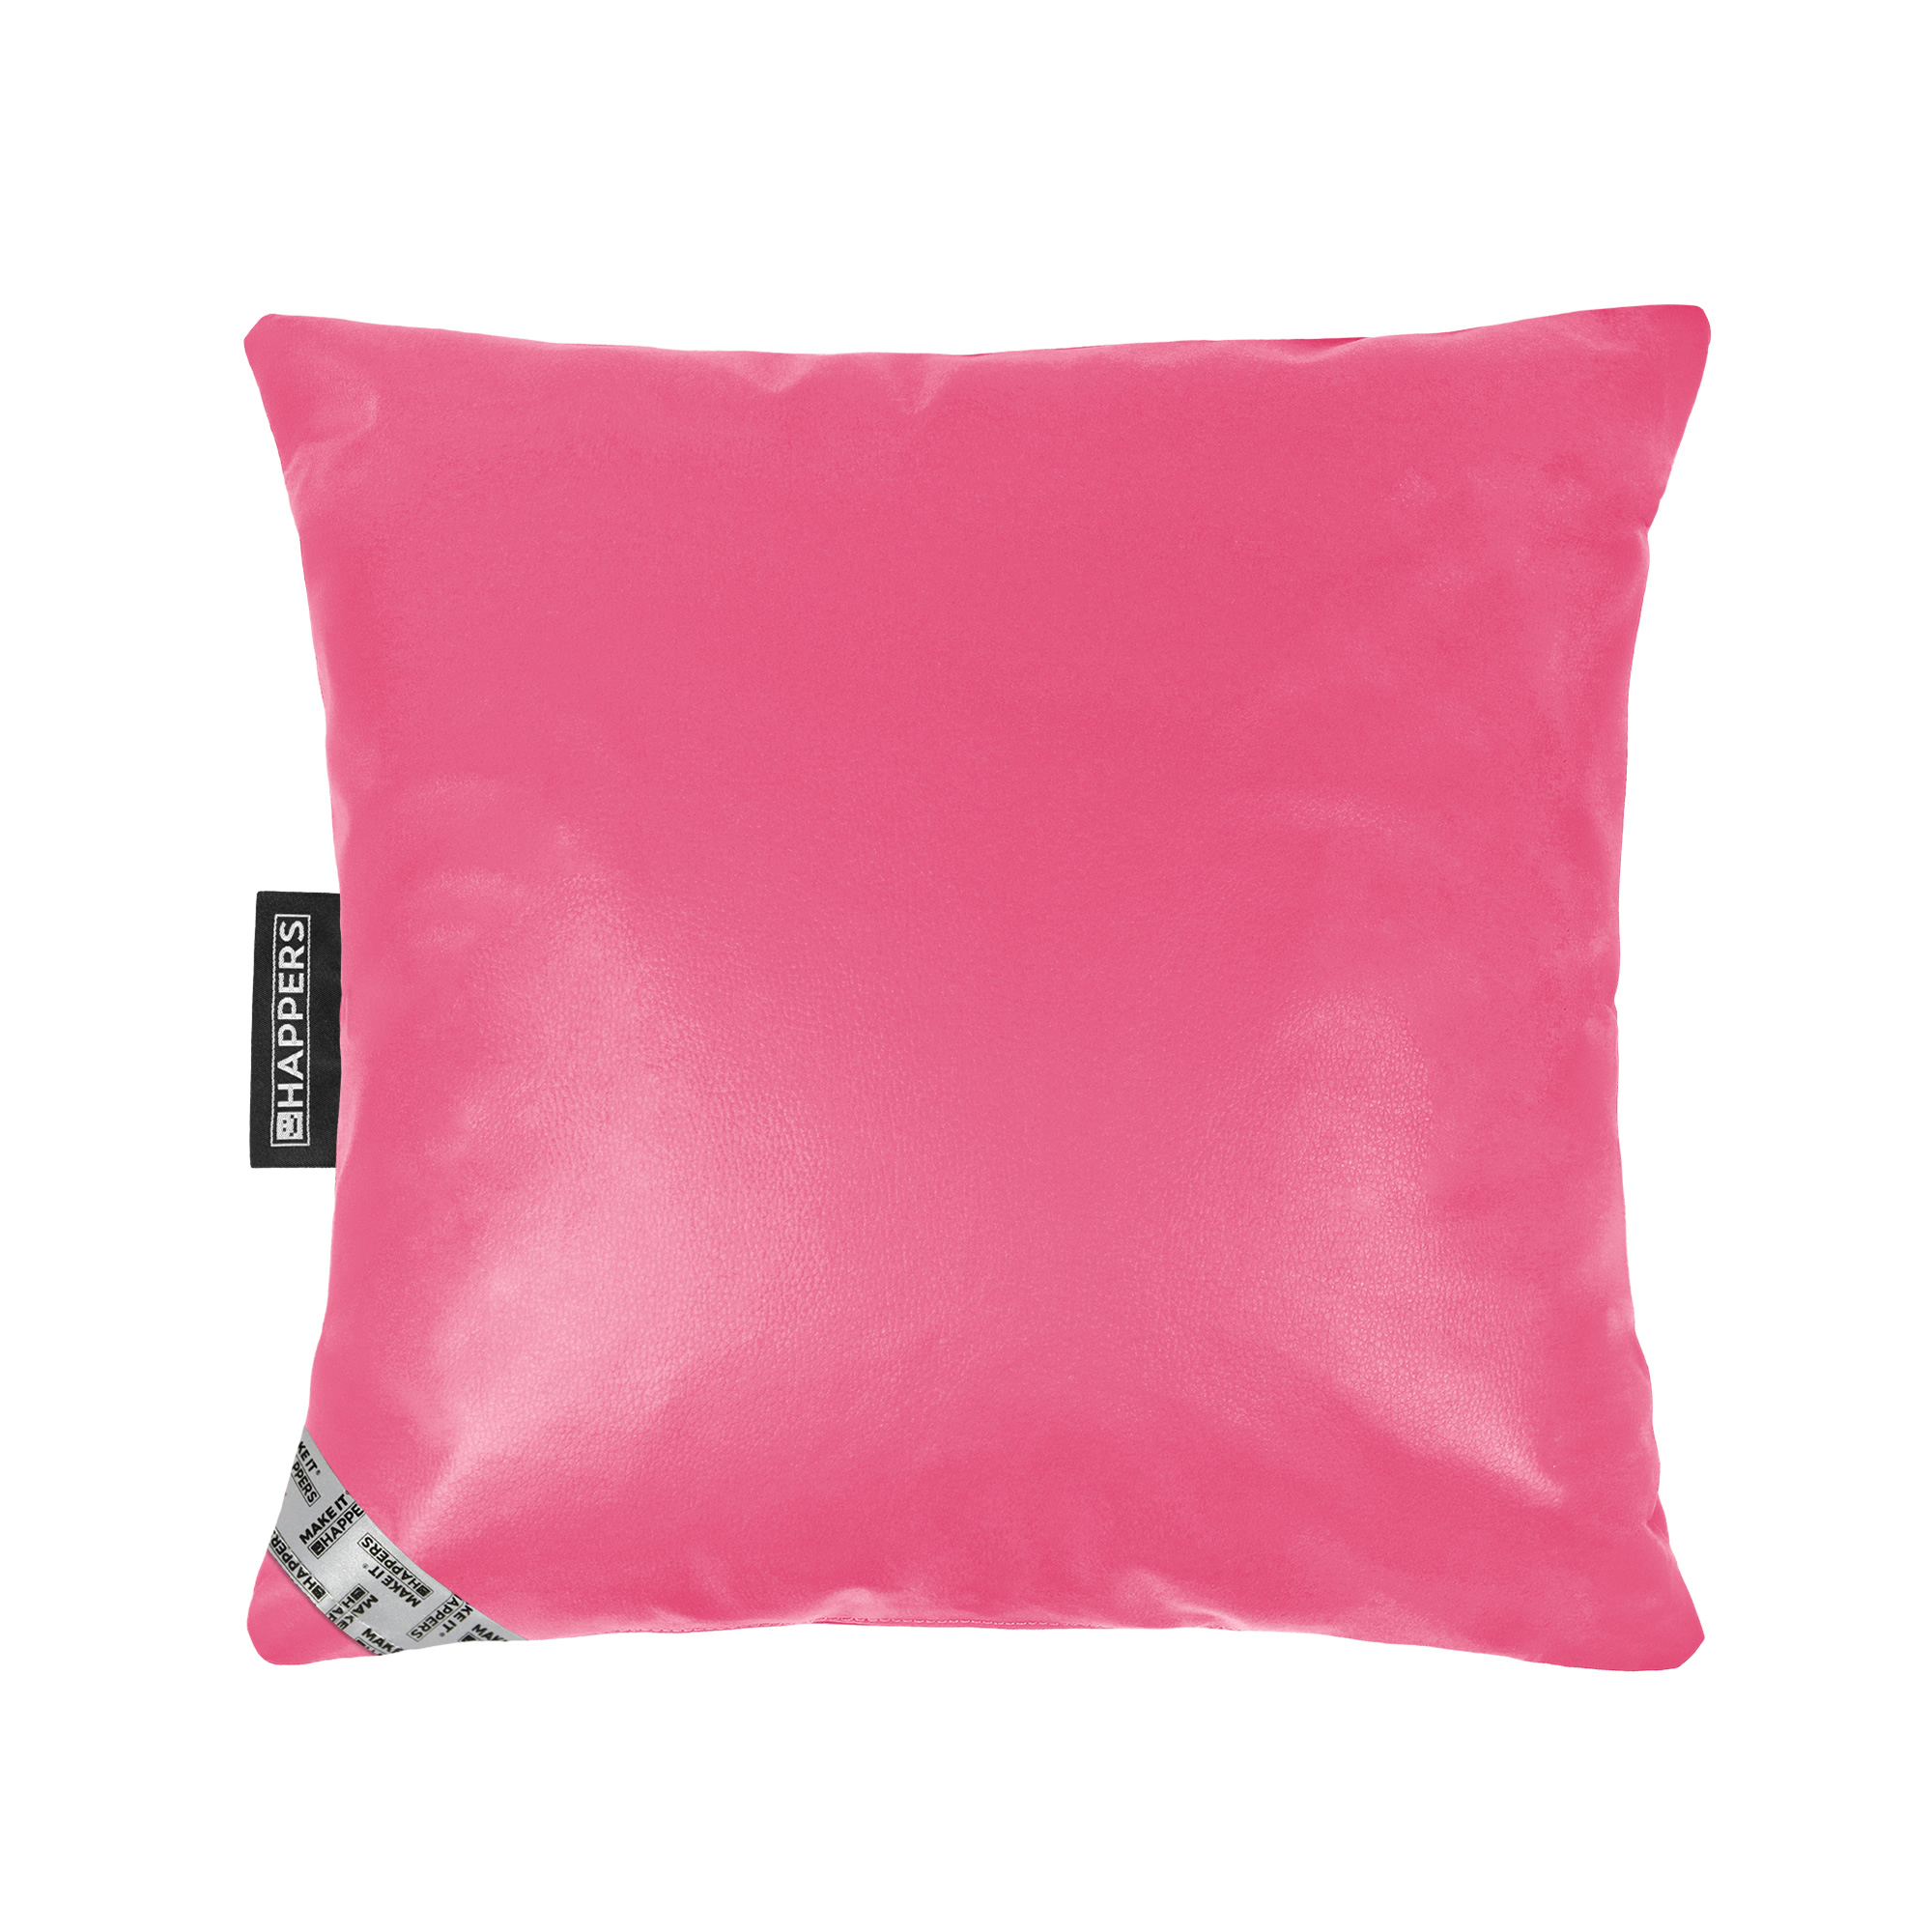 Cojín 45x45 Polipiel Indoor Fucsia Happers | Happers.es